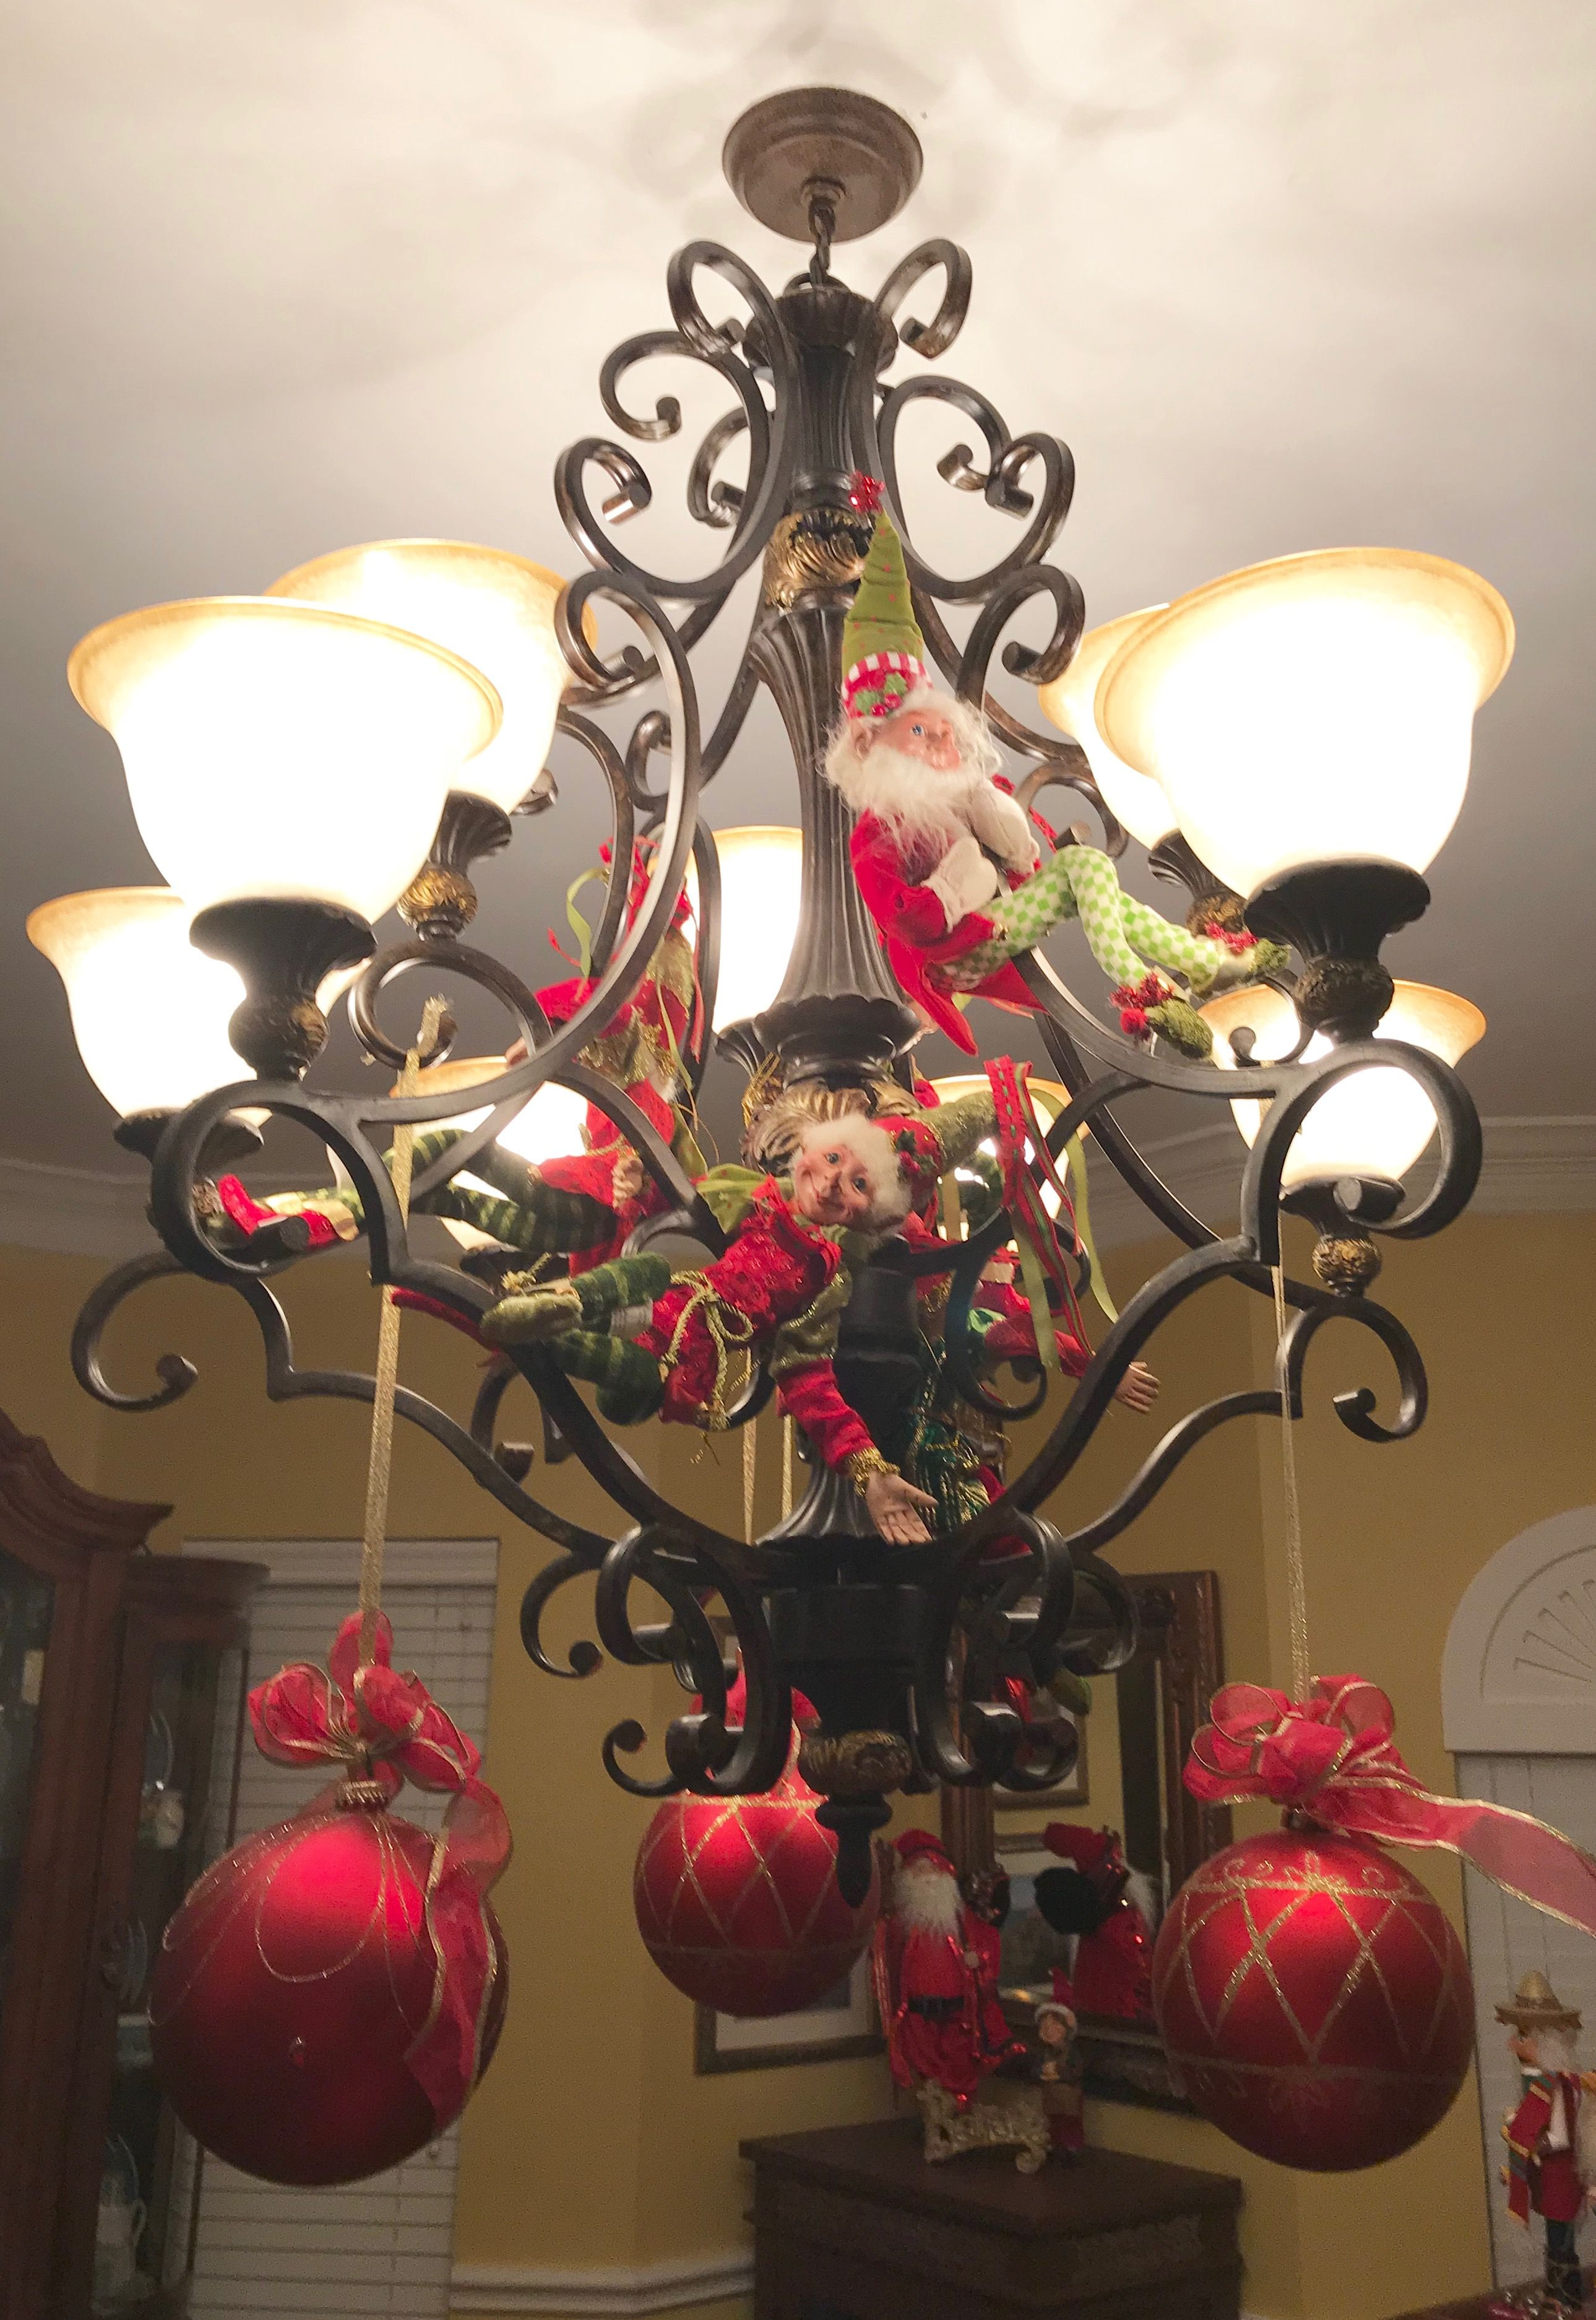 The Formal Dining Room Light Fixture Complete With Elves Just Hanging Around